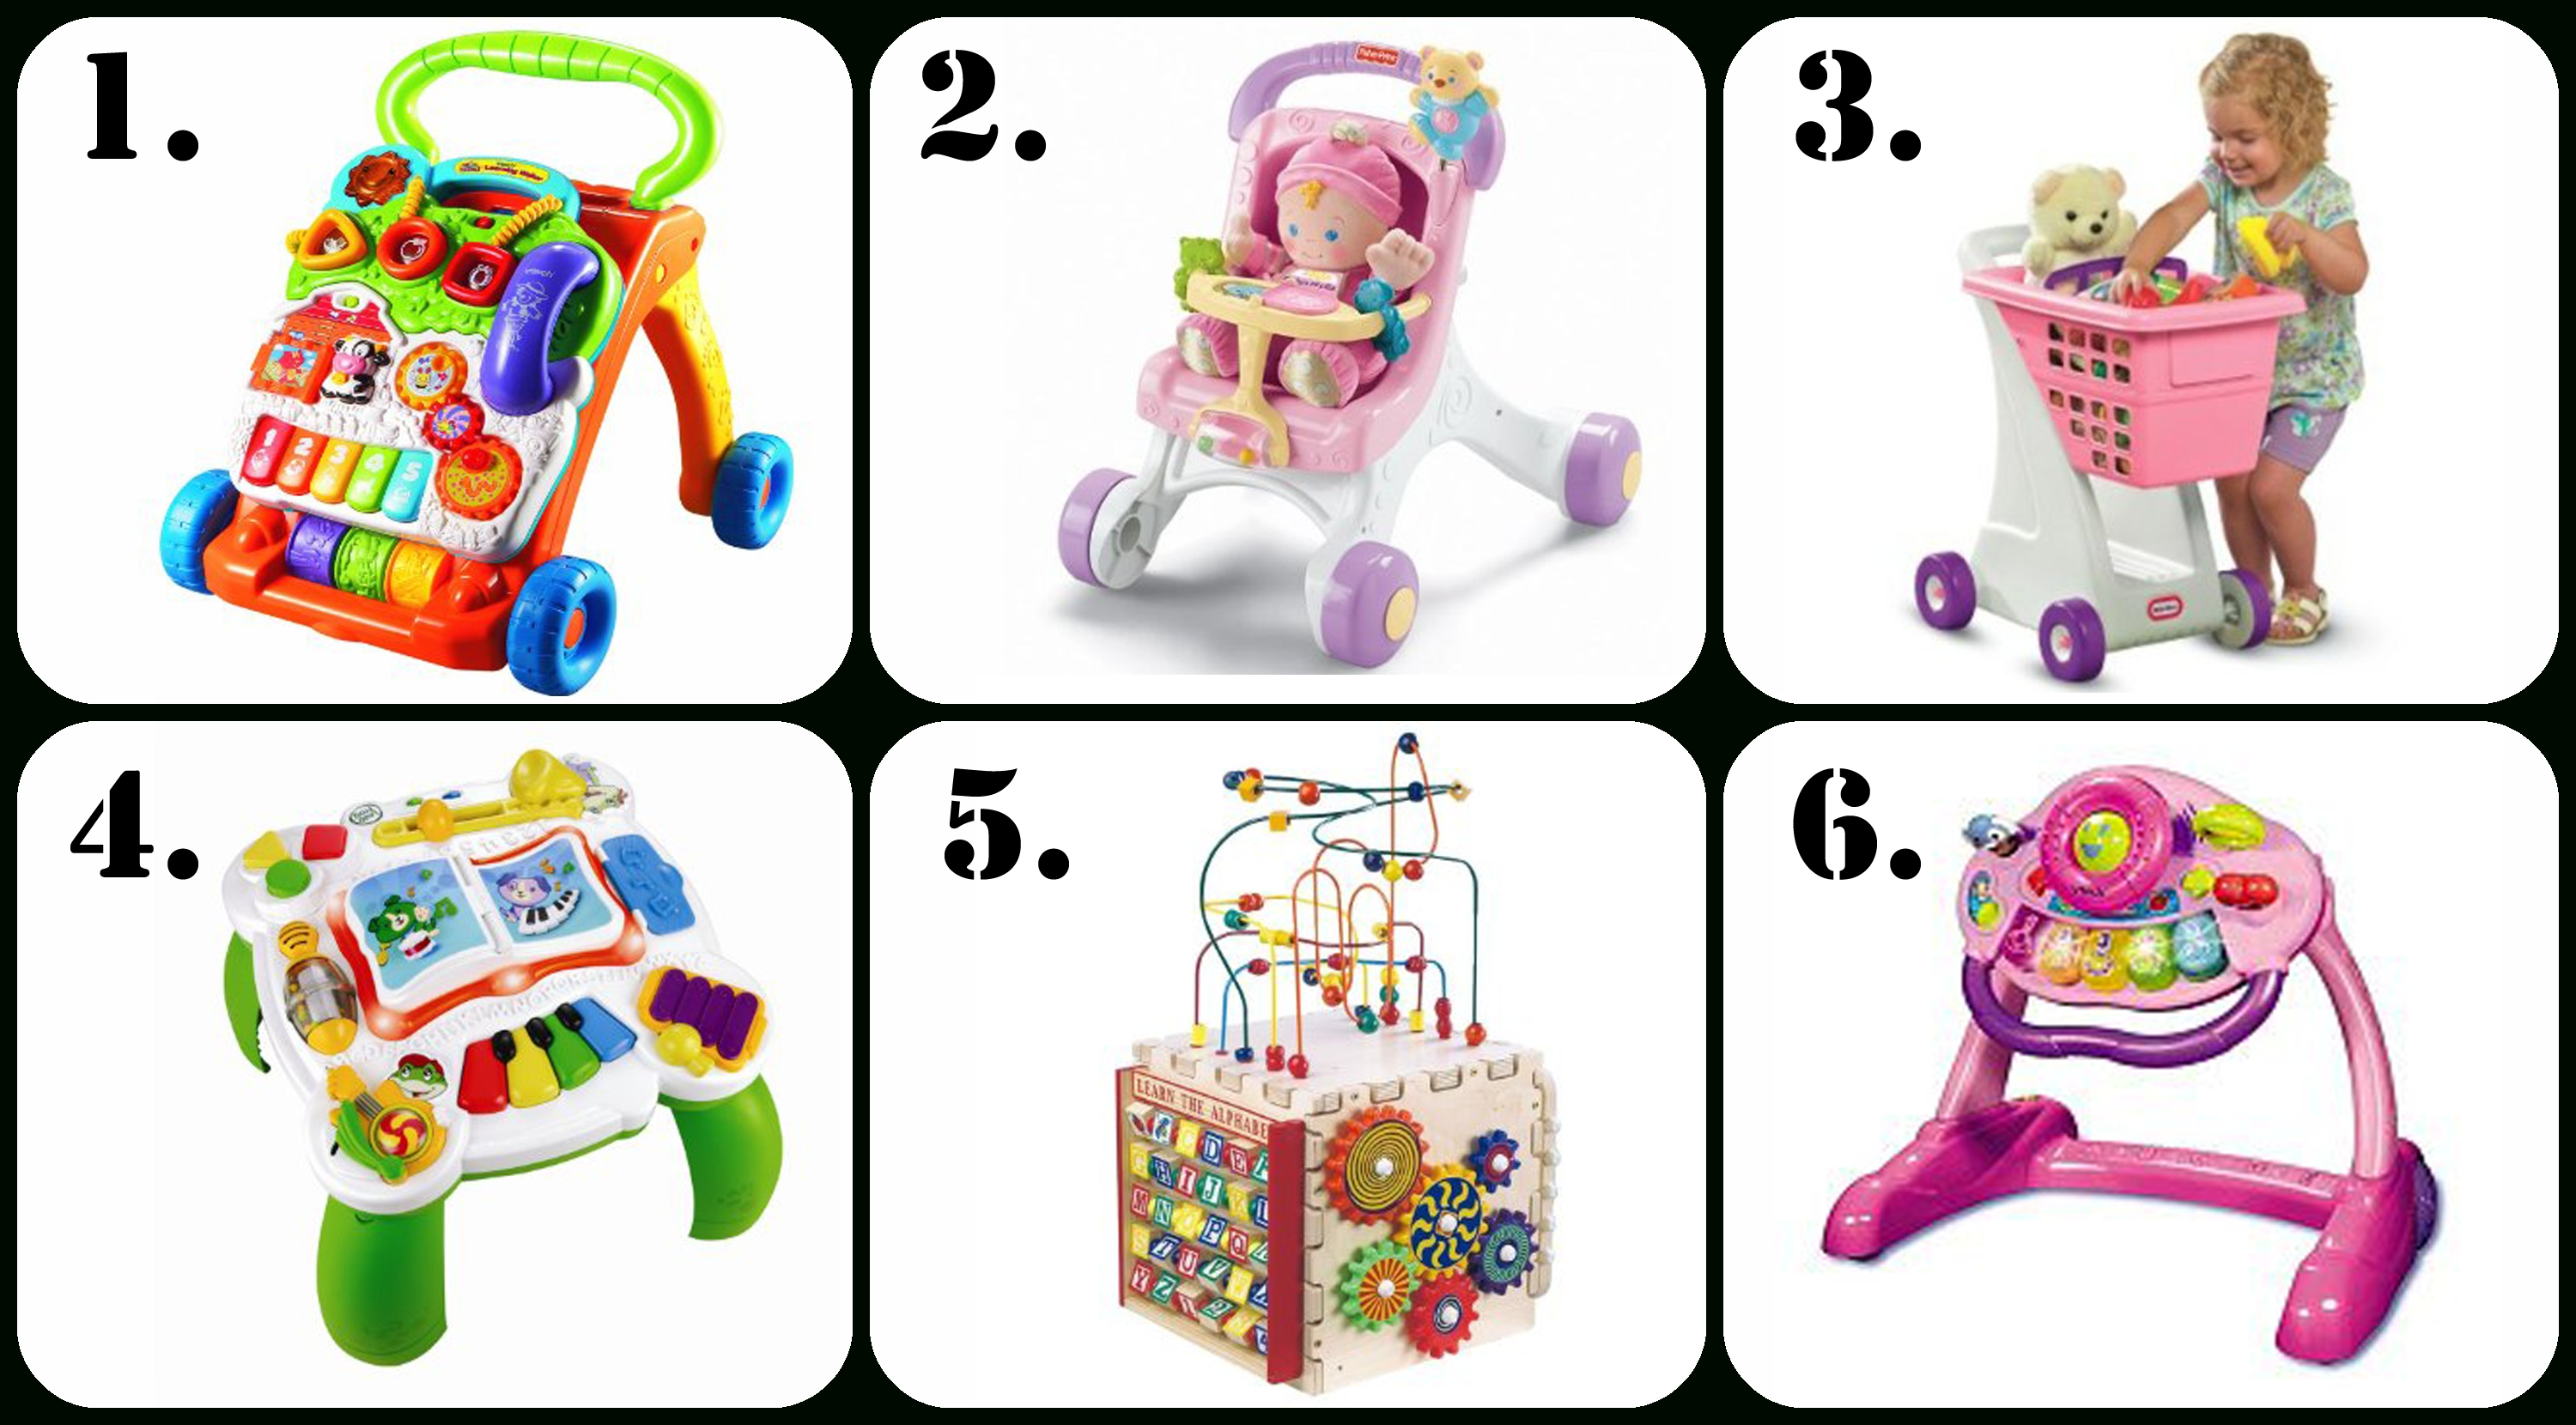 10 Elegant 1 Year Old Gift Ideas Girl the ultimate gift list for a 1 year old girl e280a2 the pinning mama 9 2021